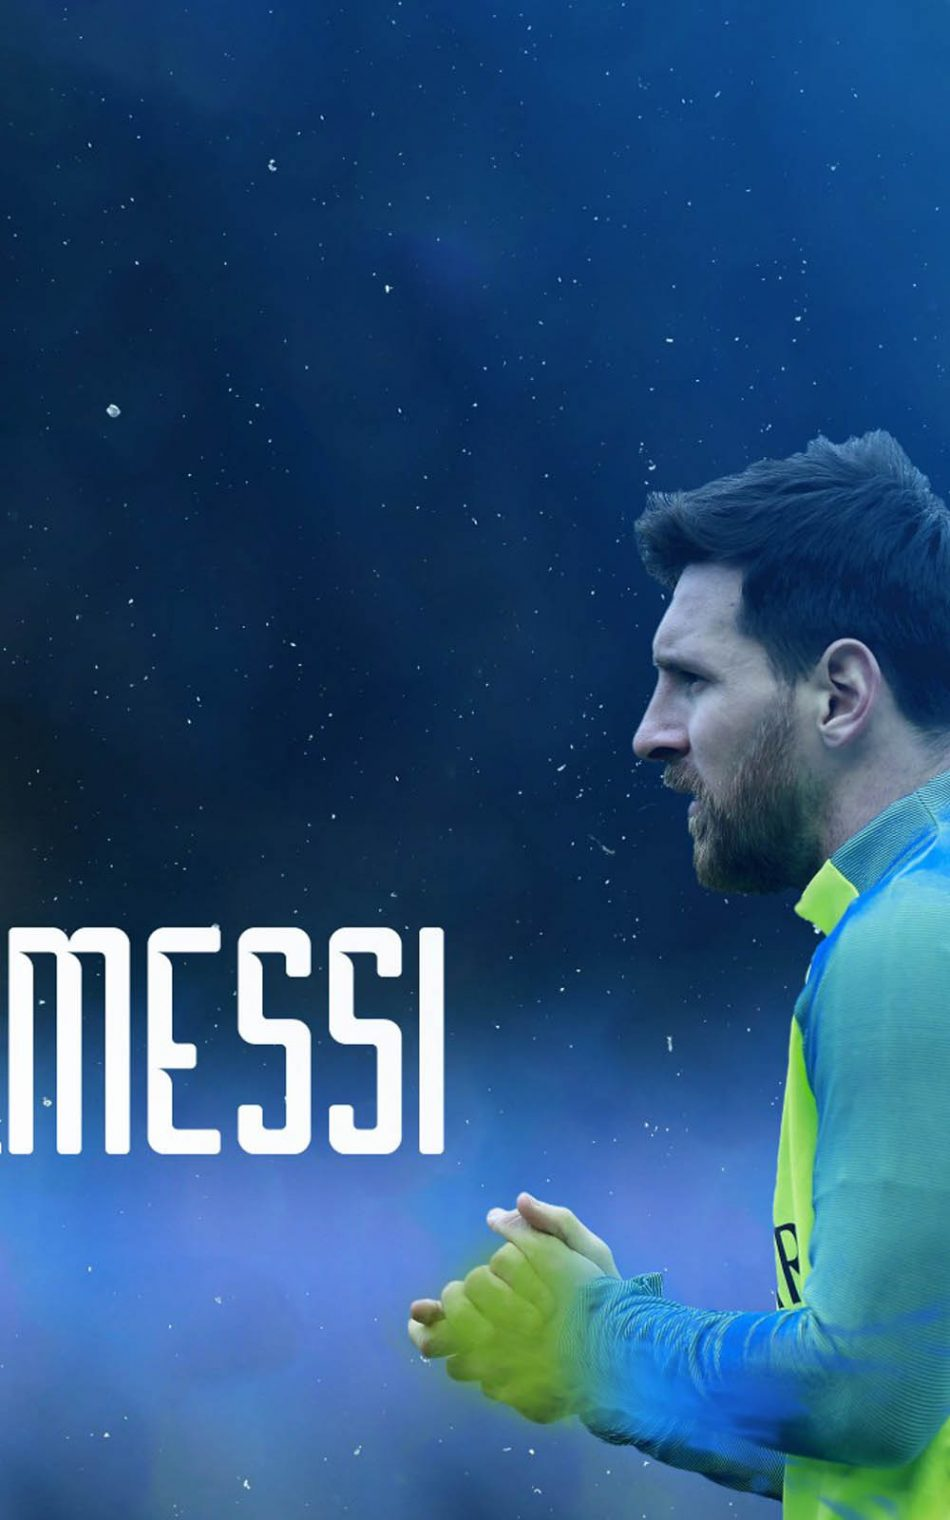 Lionel Messi FC Barcelona - Download Free HD Mobile Wallpapers